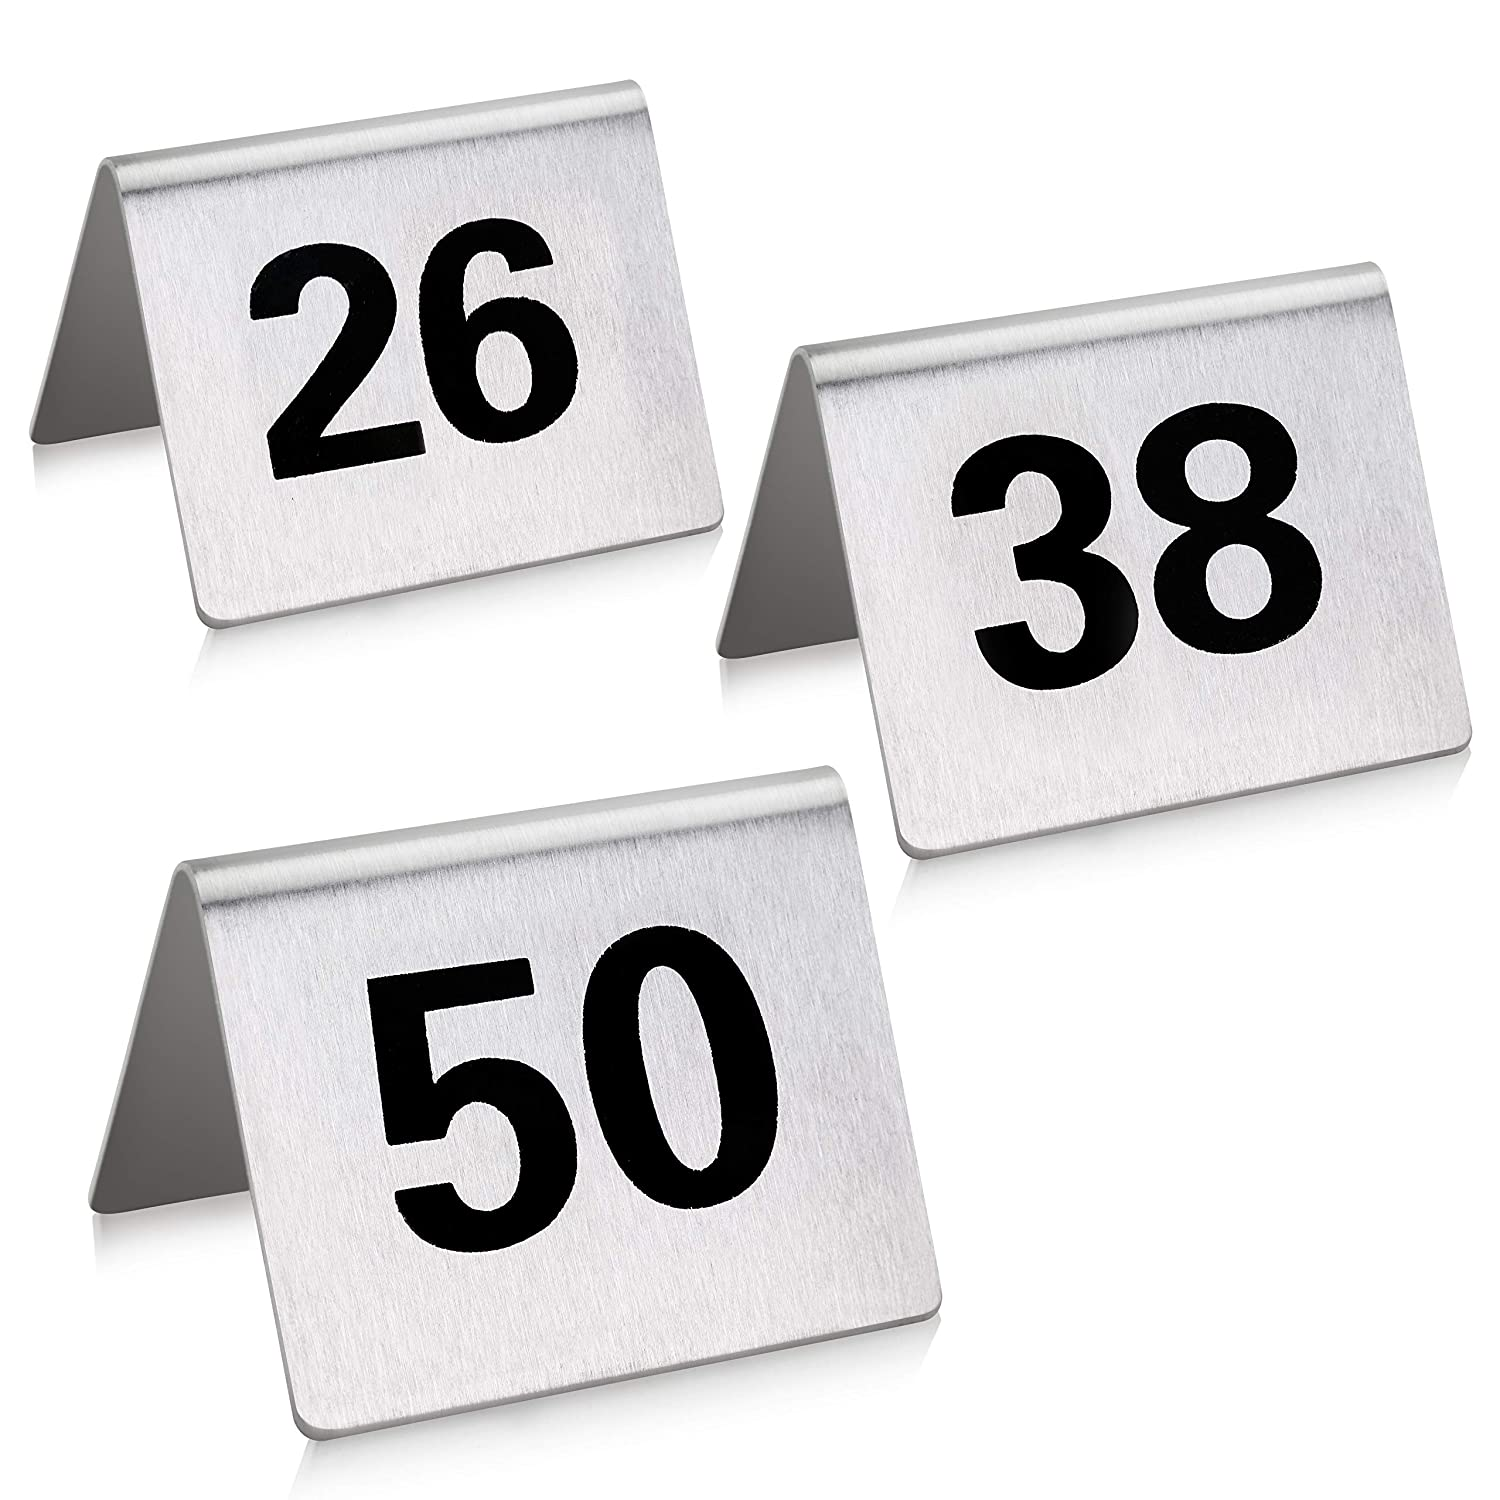 New Star Foodservice 27631 Stainless Steel Tent Style Table Number Card, 26-50, 1.5